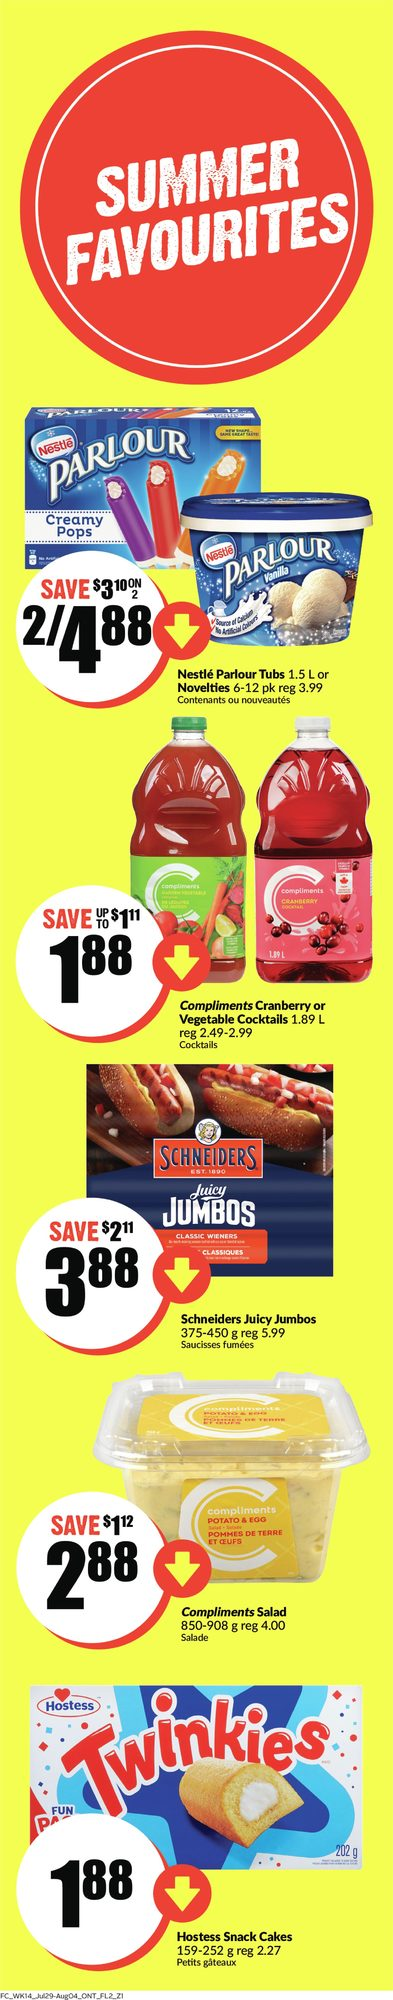 FreshCo - Weekly Flyer Specials - Page 3